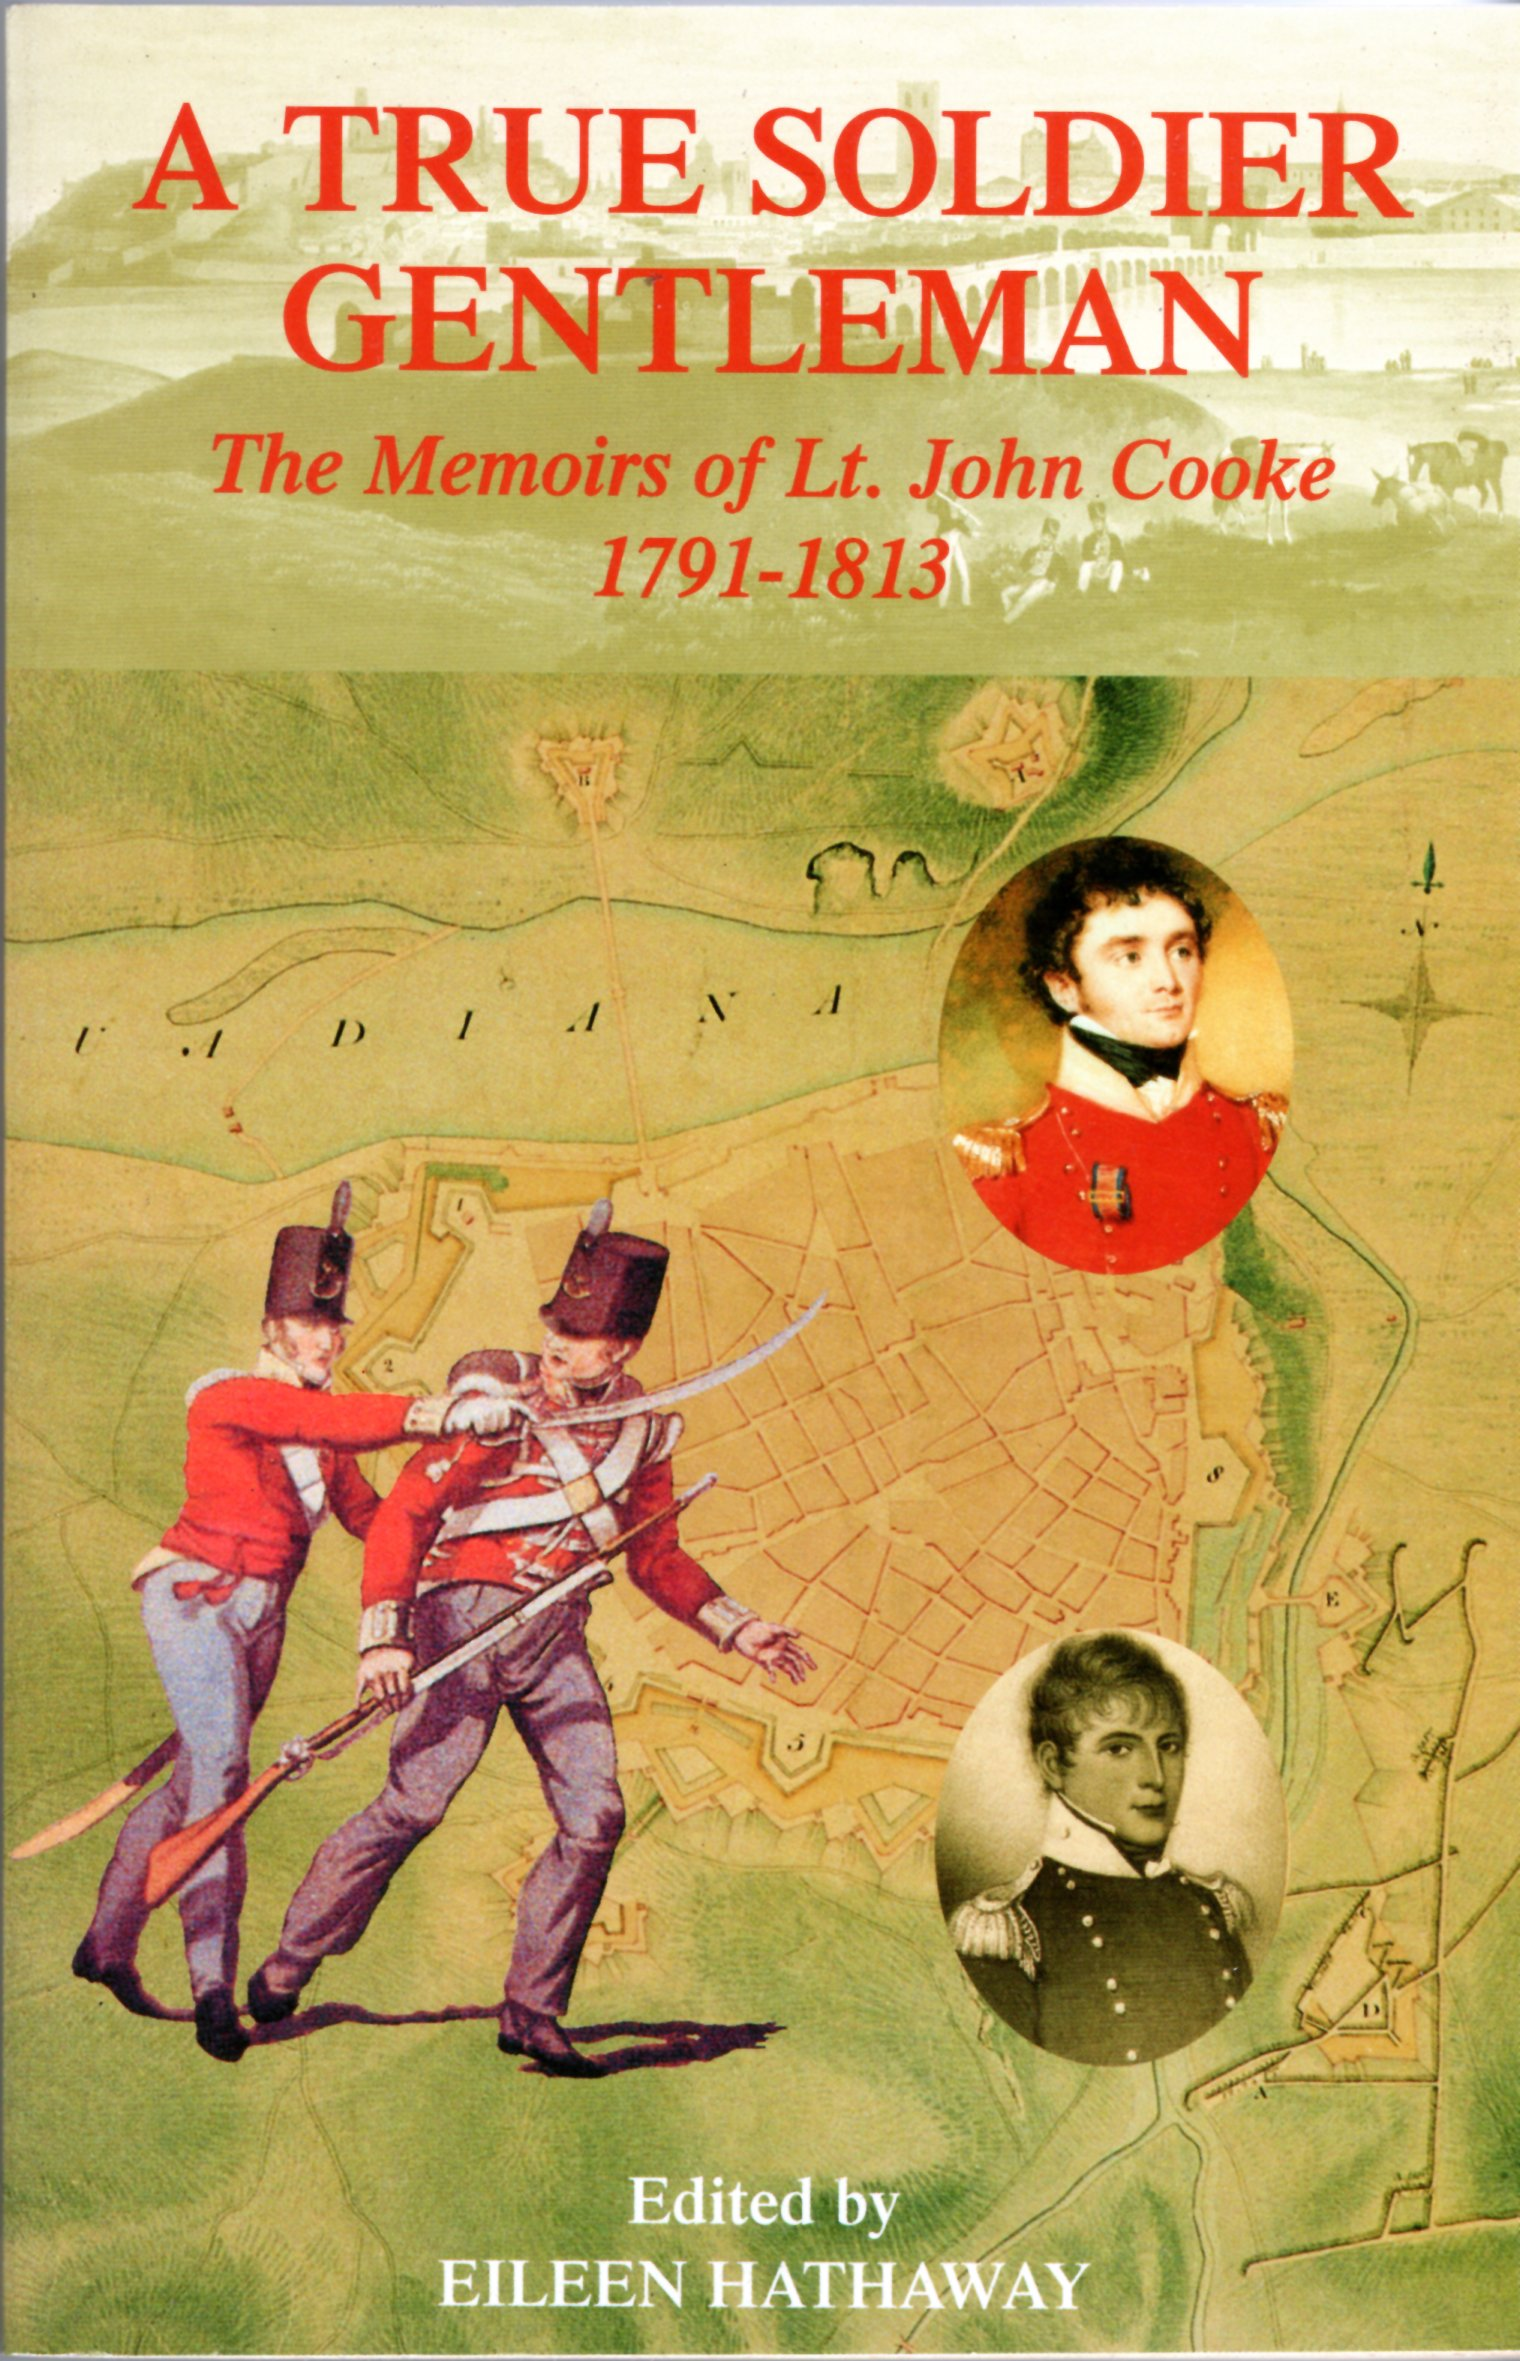 Image for A True Soldier Gentleman: The Memoirs of Lt. John Cooke 1791-1813